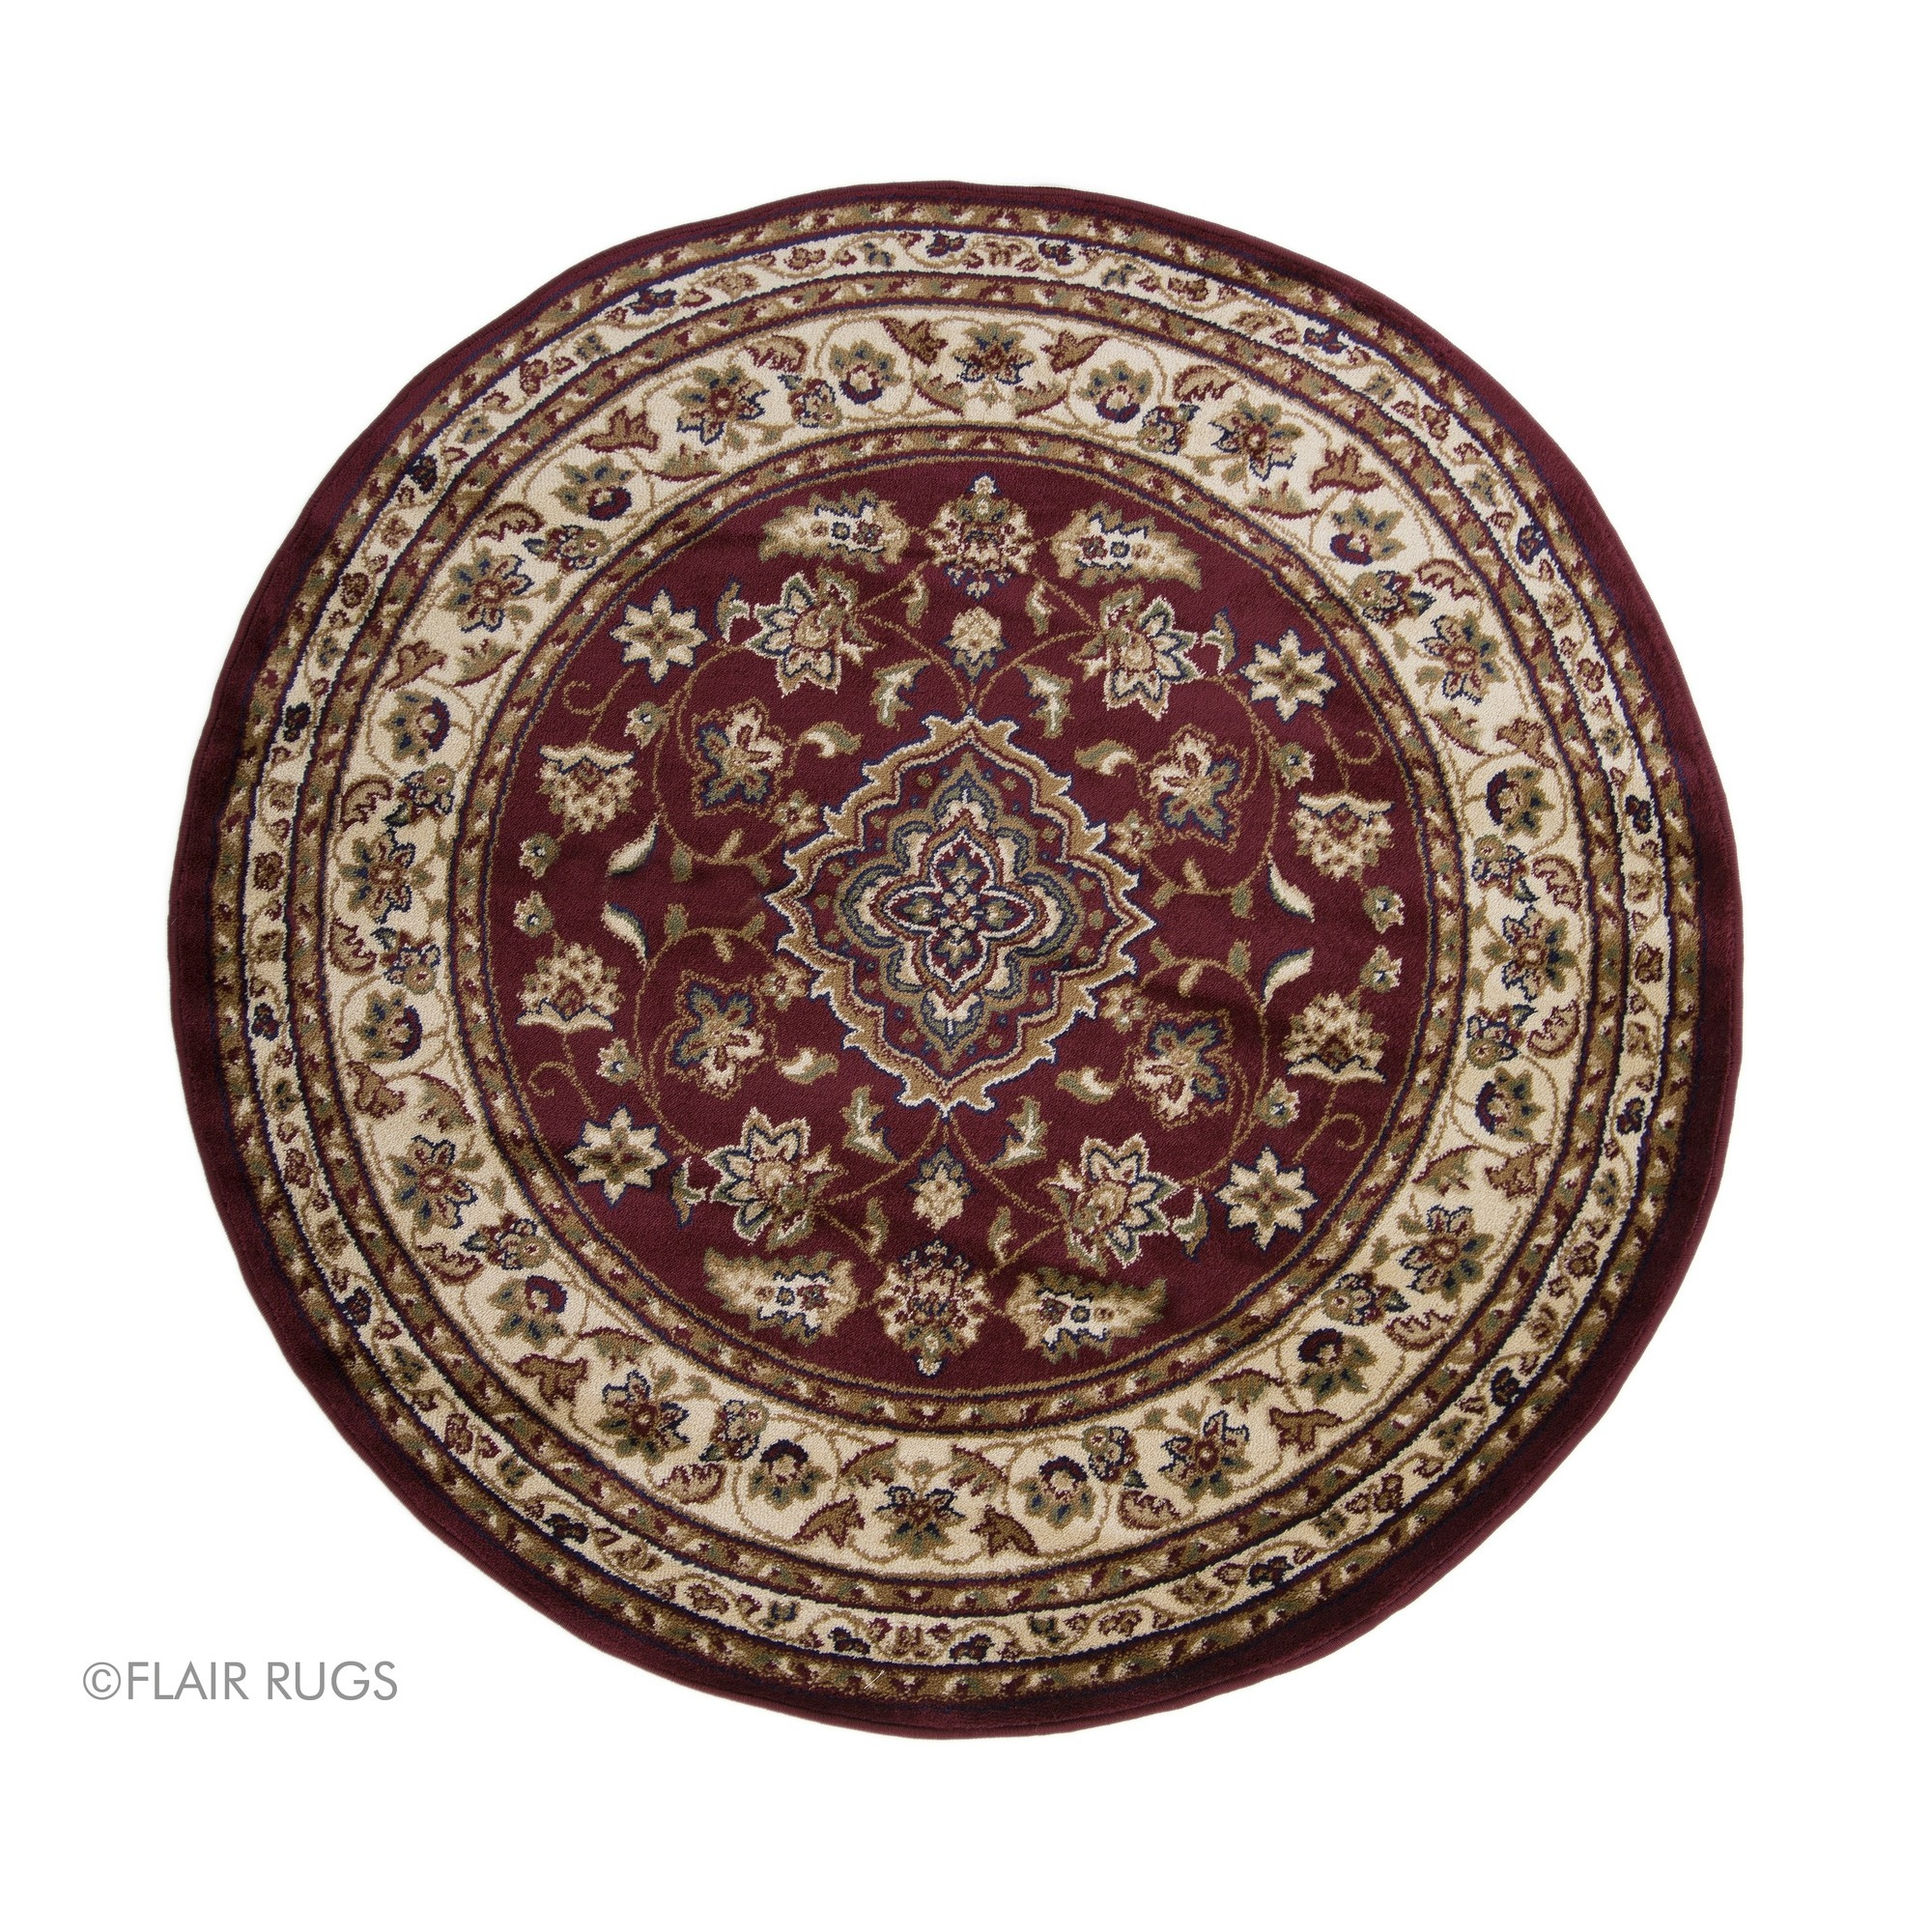 Flair Rugs Sincerity Sherbourne Antique Design Round Floor